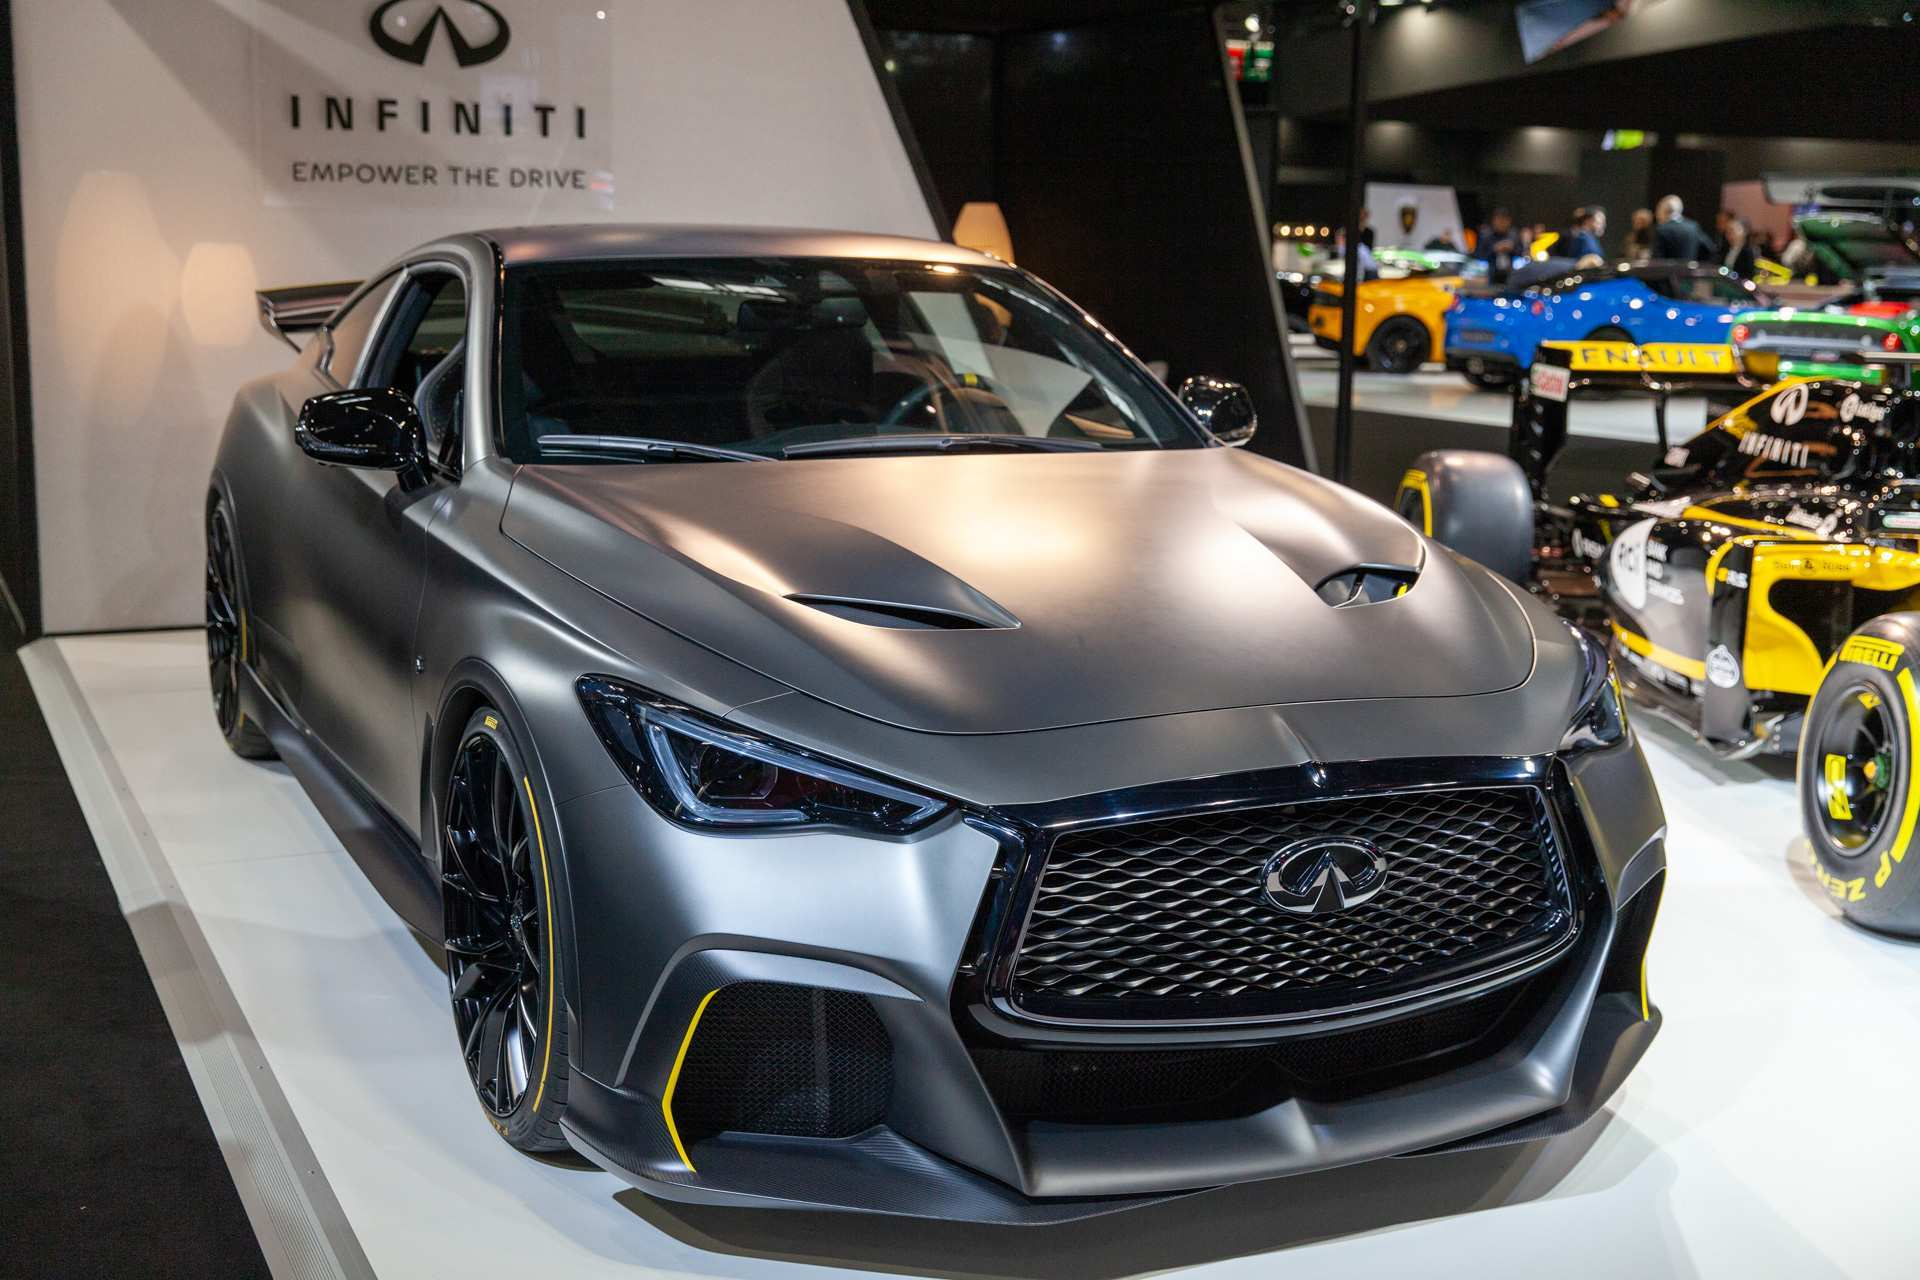 74 The Best 2020 Infiniti Q60 Black S Performance